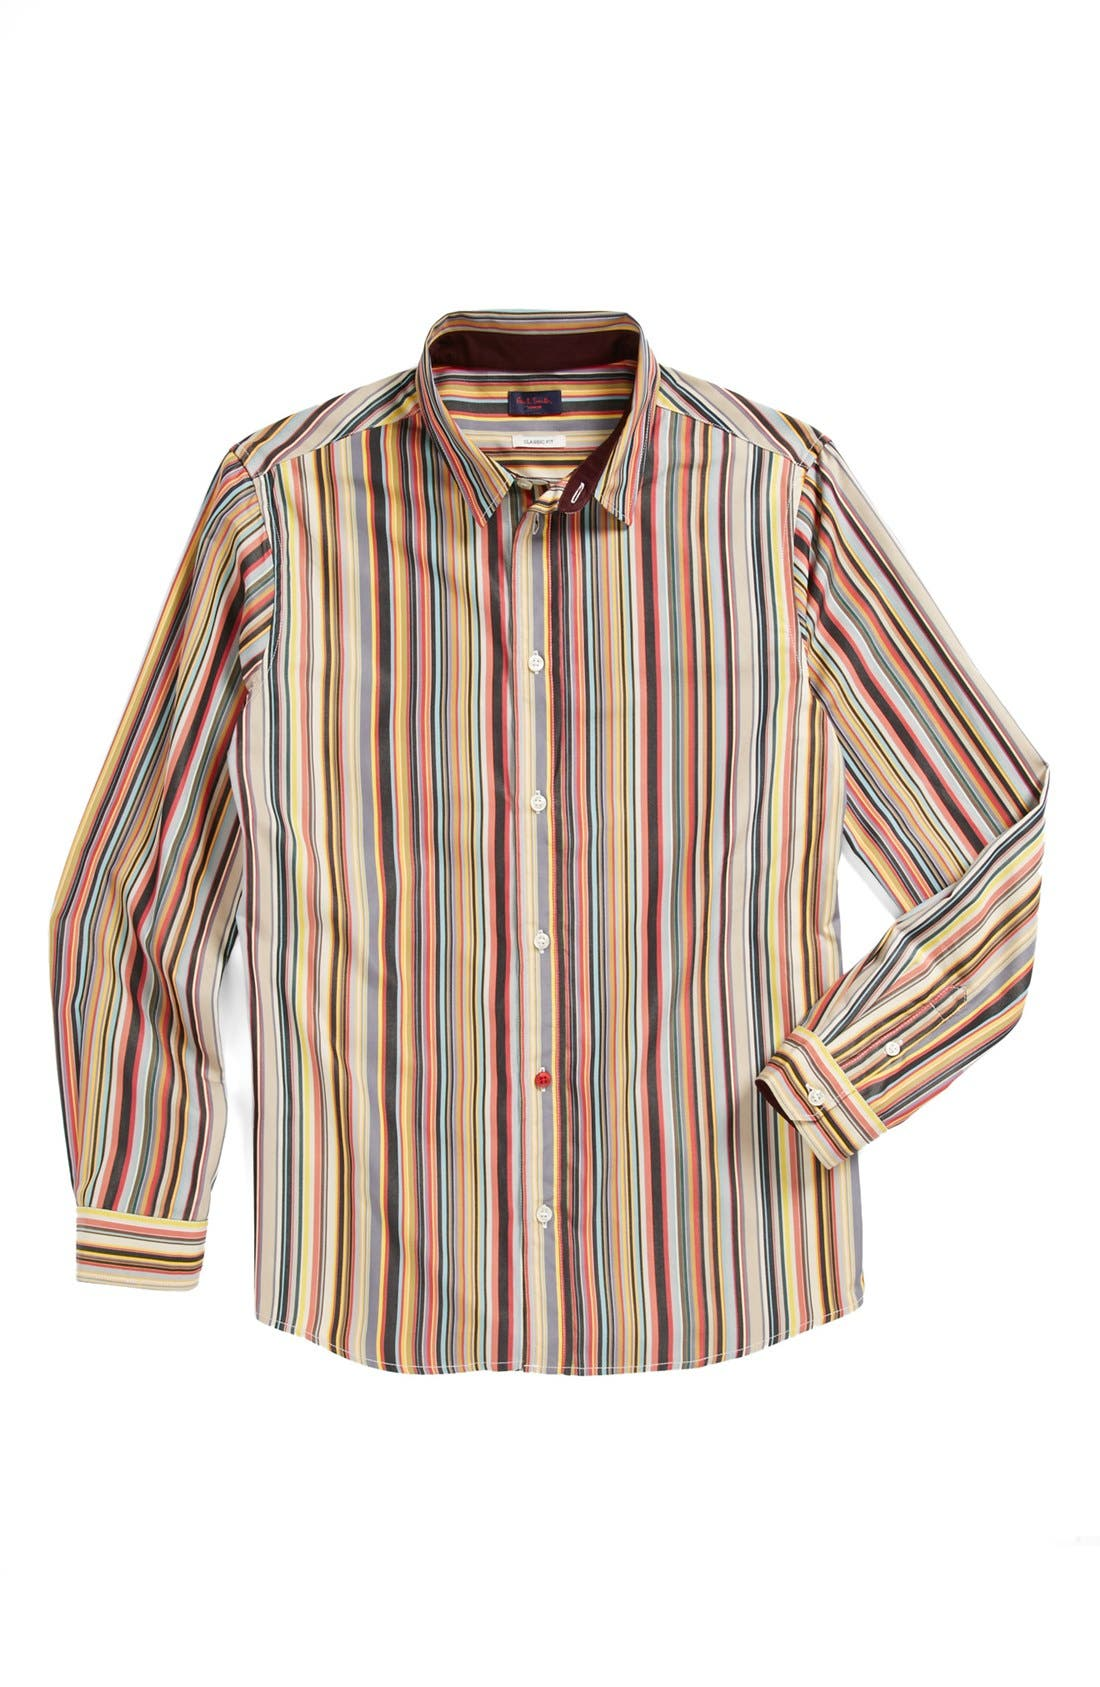 Main Image - Paul Smith Junior 'Elrick' Stripe Sport Shirt (Toddler Boys, Little Boys & Big Boys)